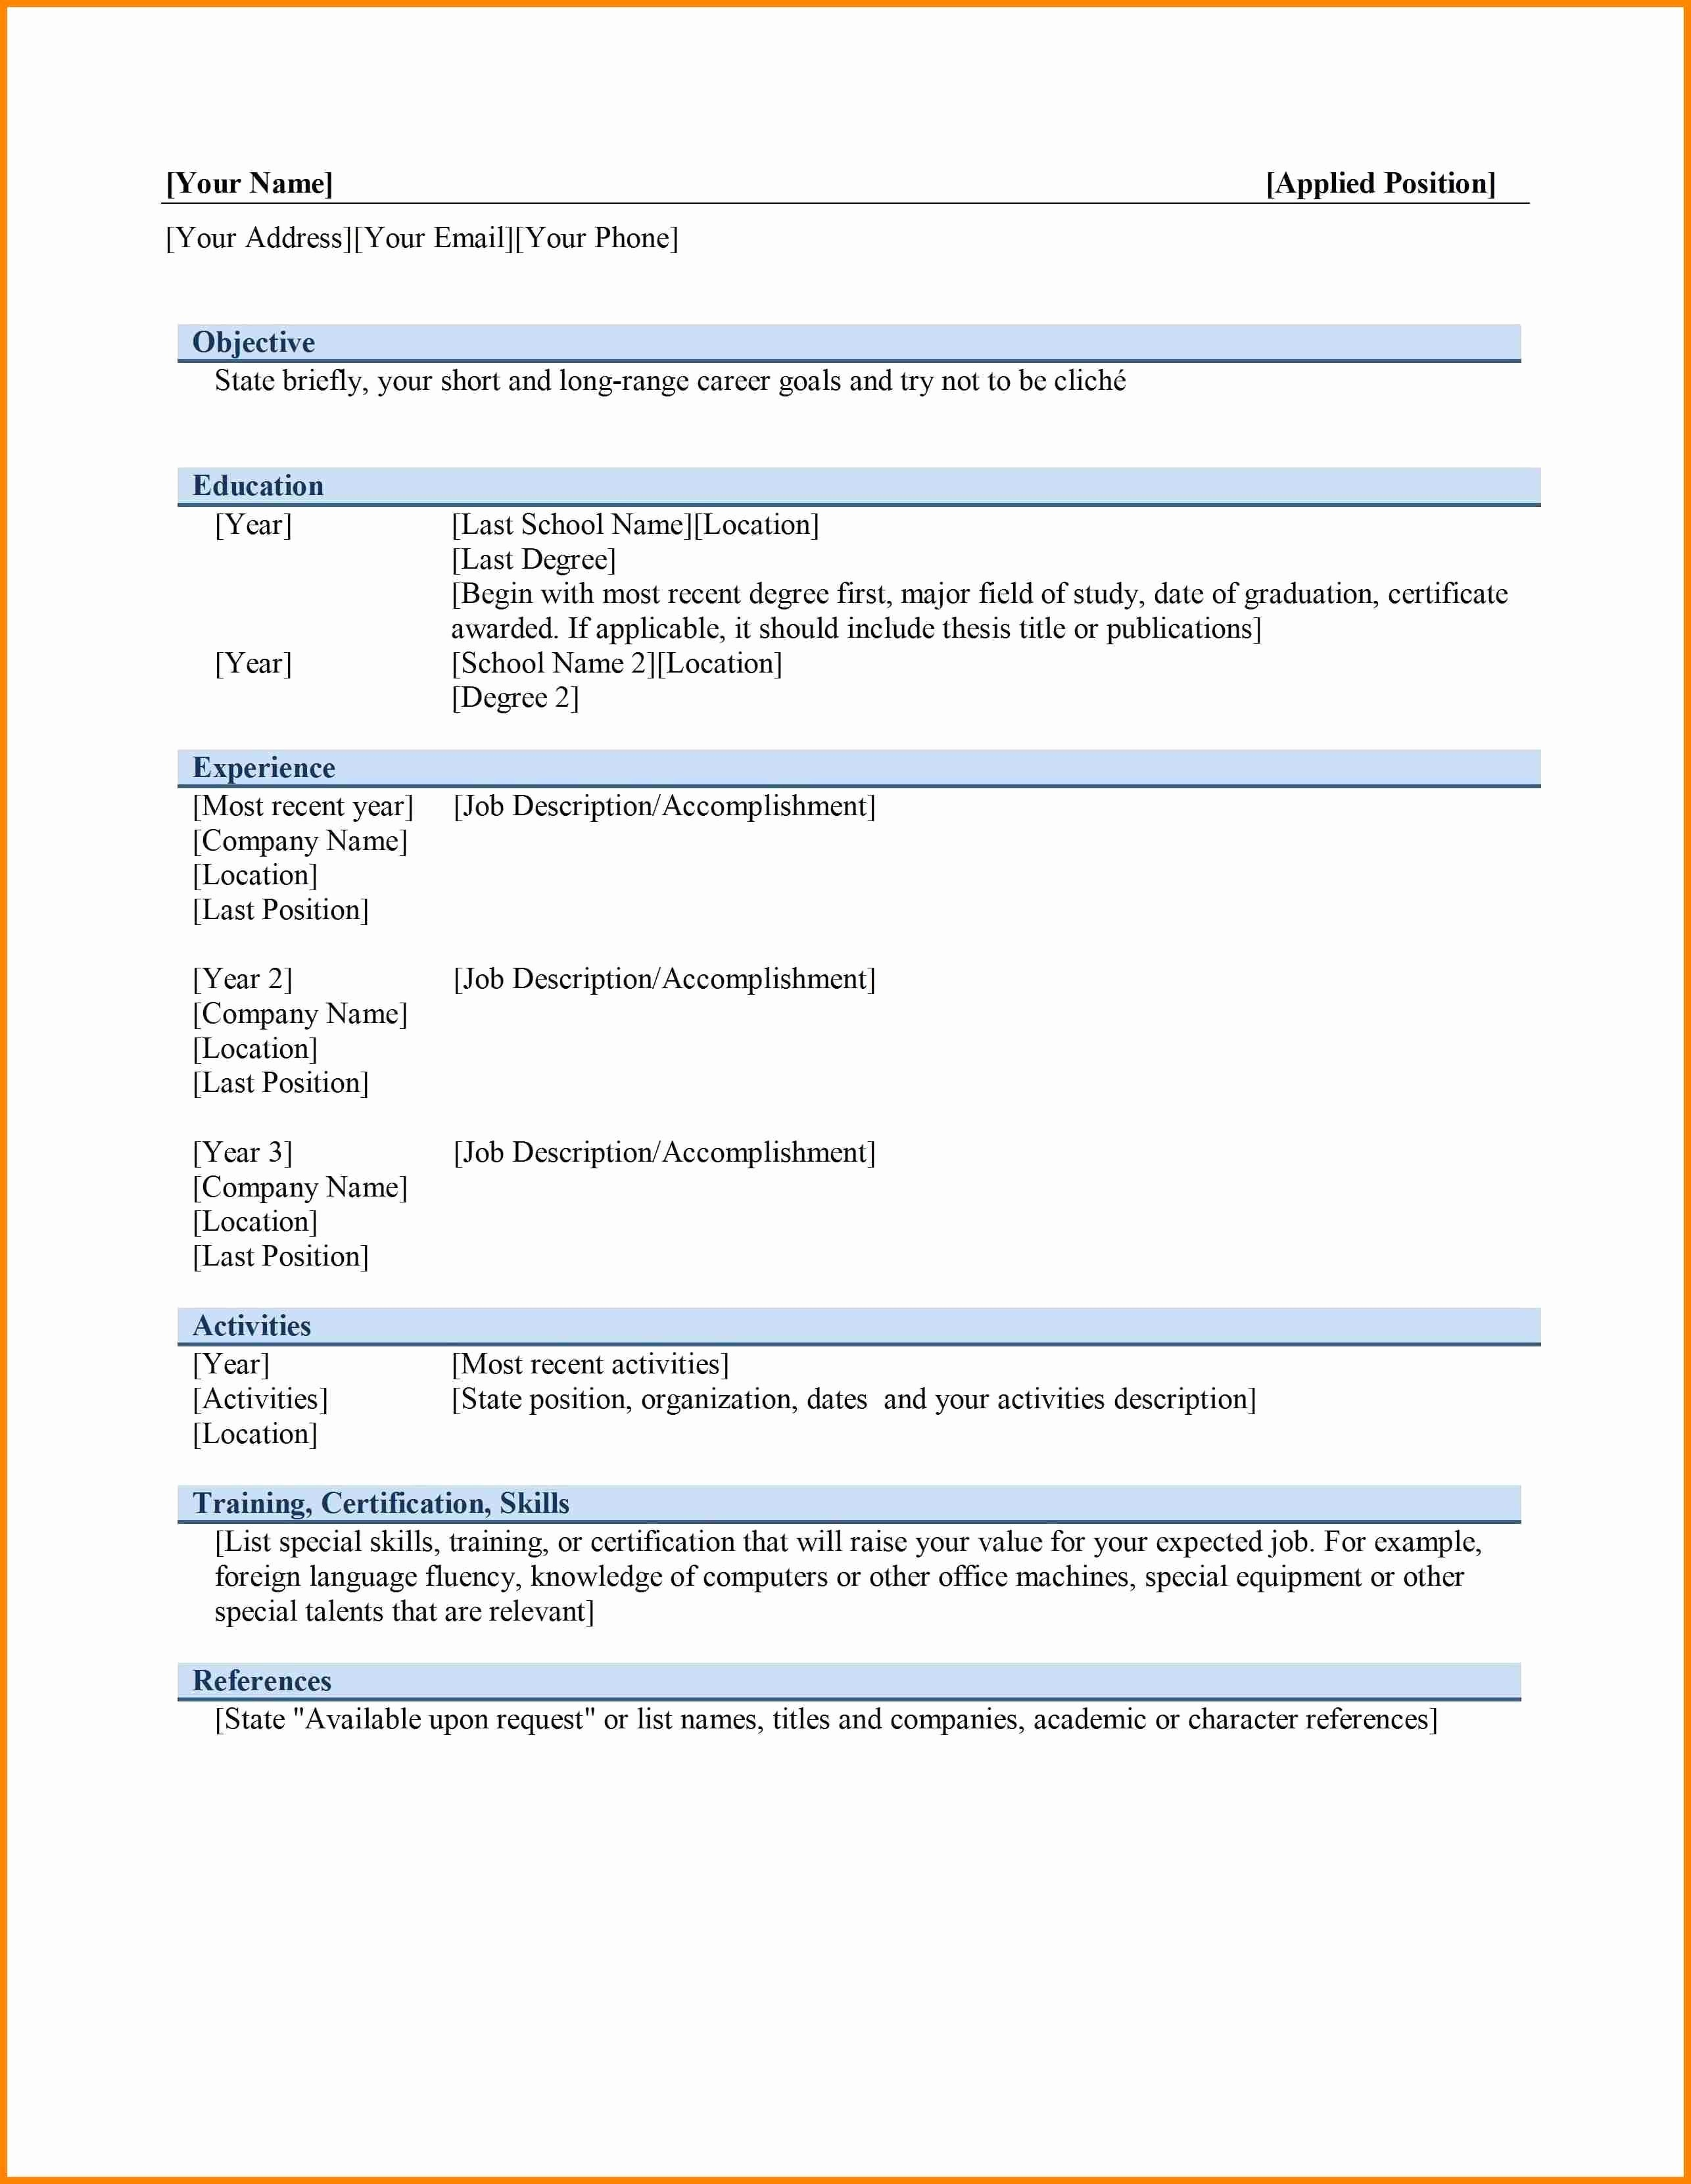 Ms Word Templates for Resume Lovely Microsoft Word Free Resume Templates Download Sidemcicek